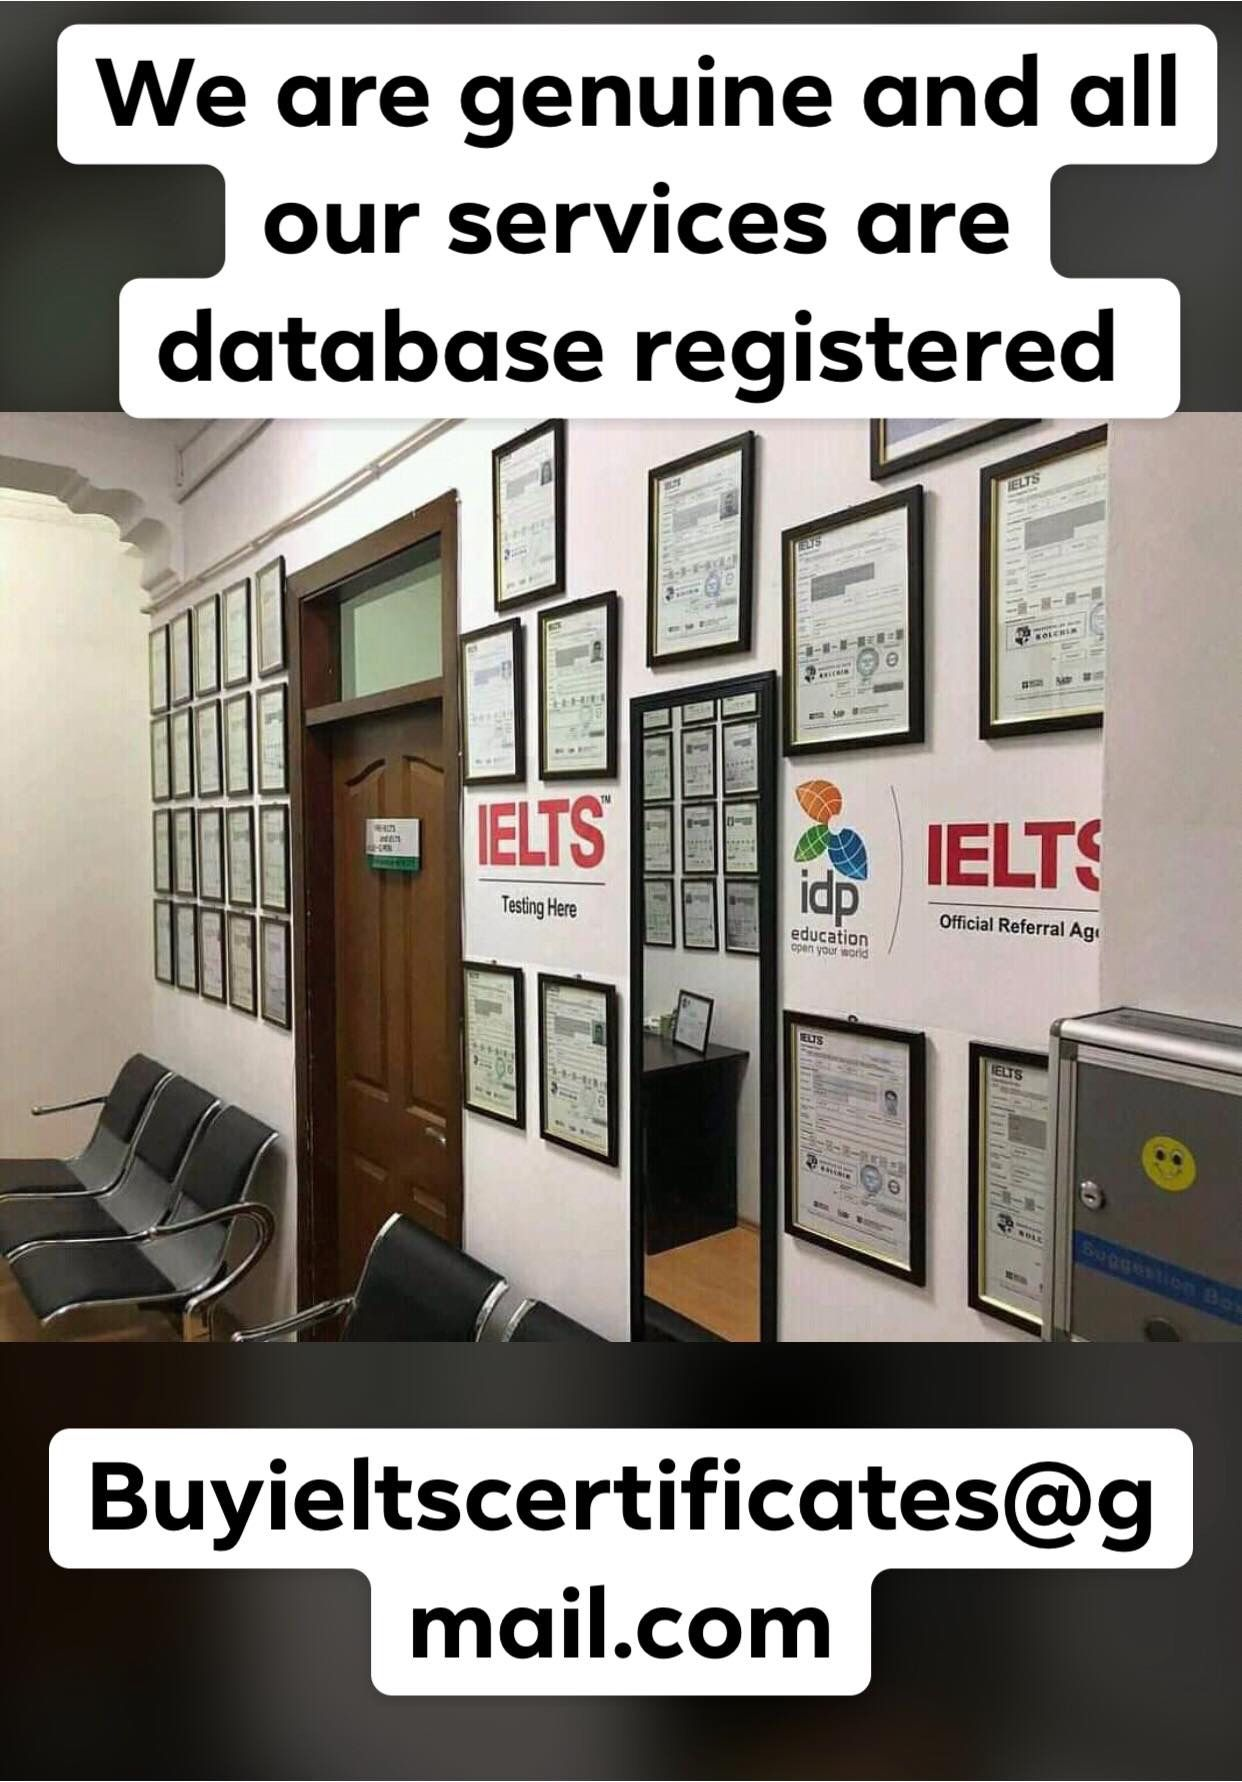 WhatsApp +971561206104) buy/get IELTS certificates without exams in